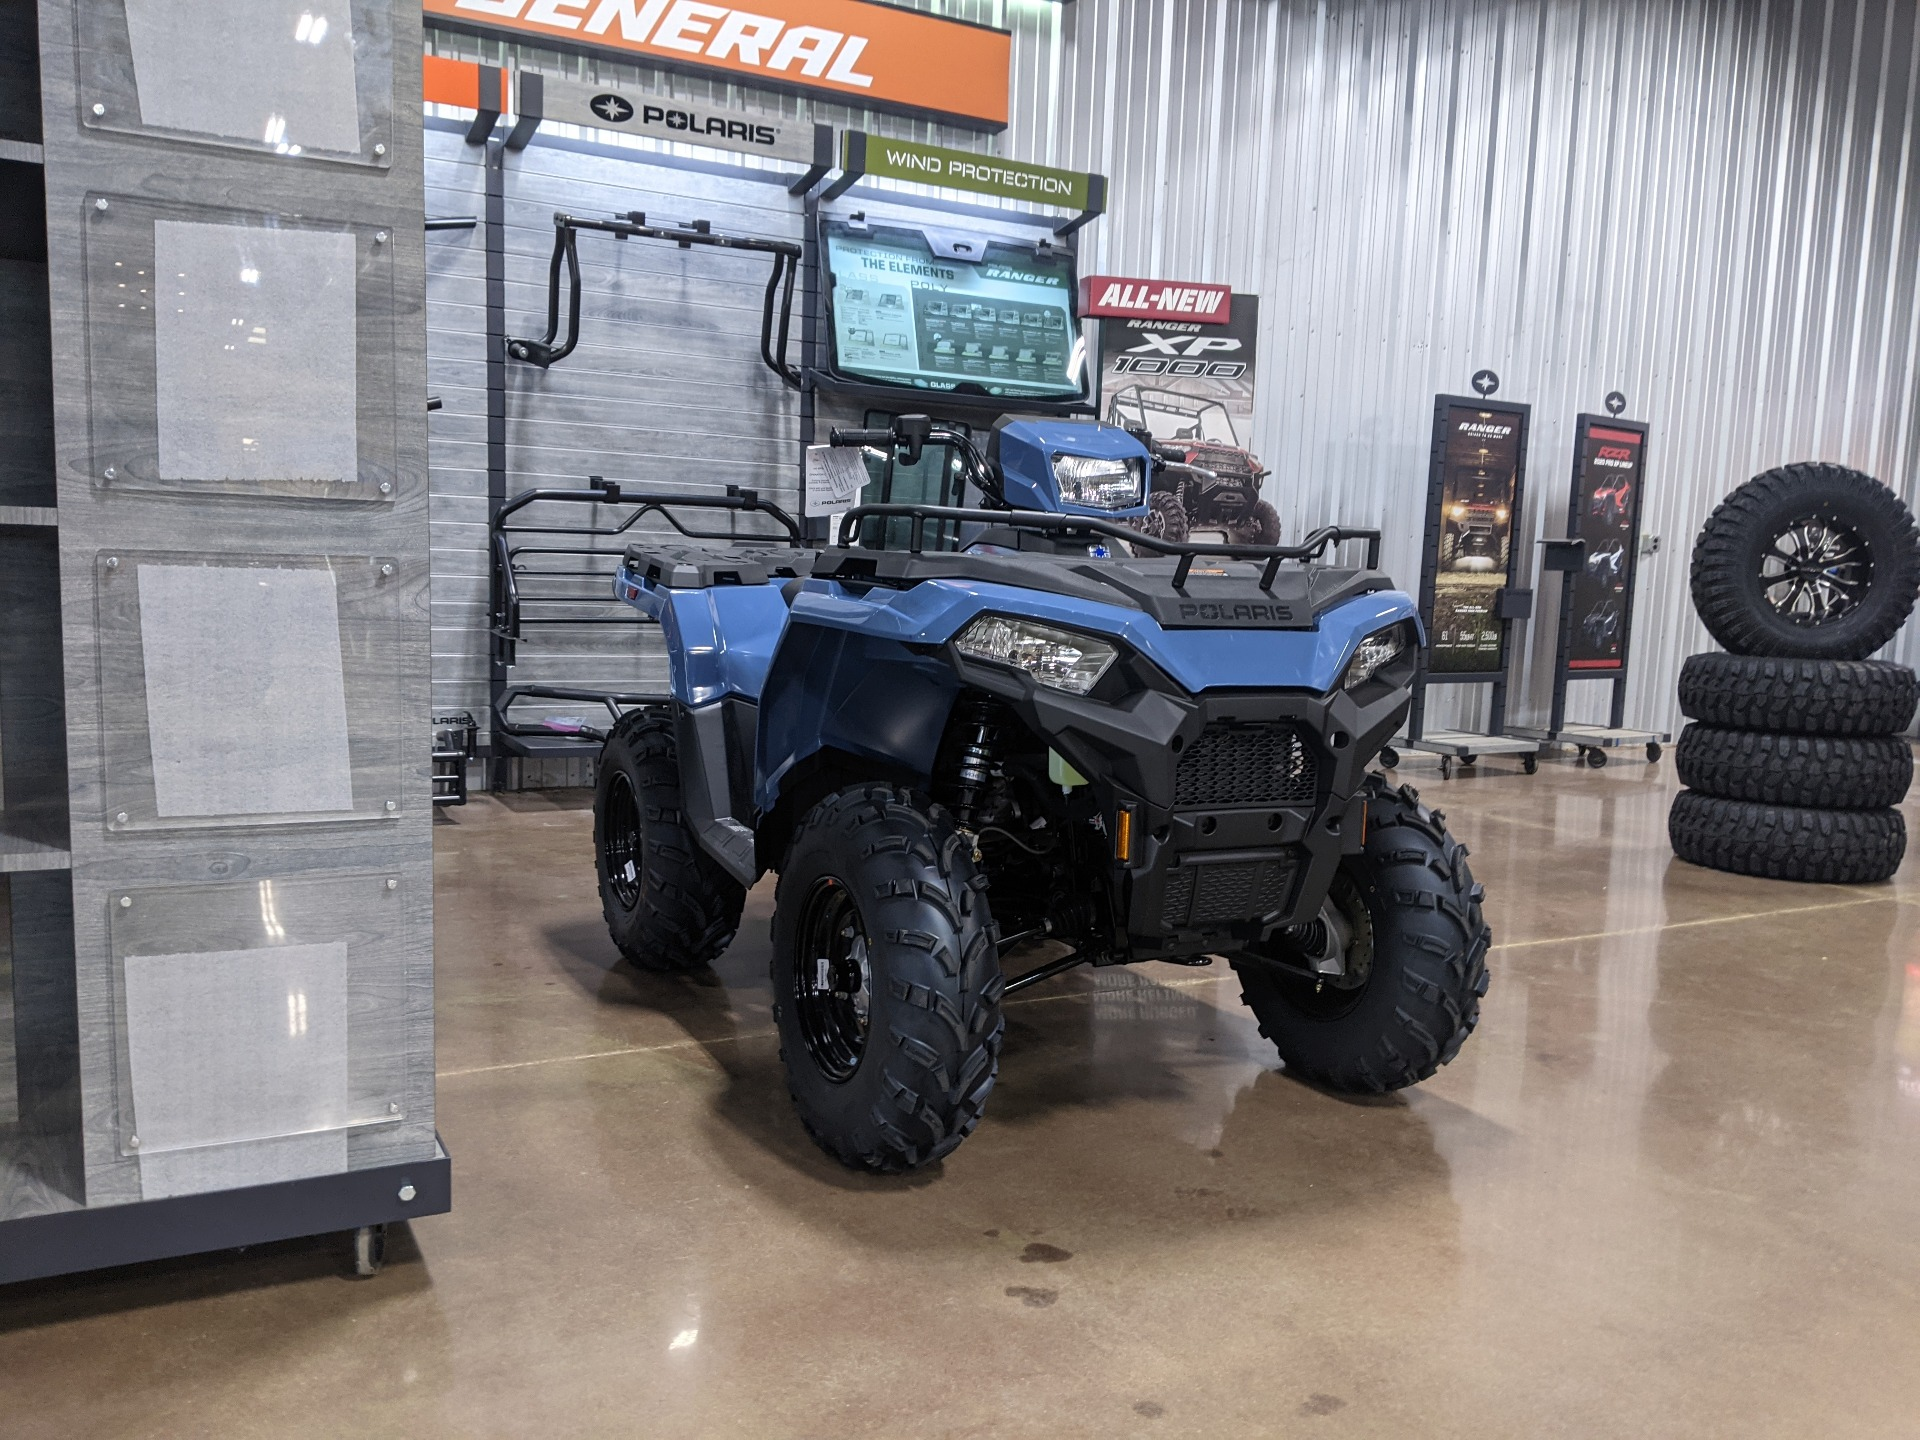 2021 Polaris Sportsman 570 in Sapulpa, Oklahoma - Photo 2